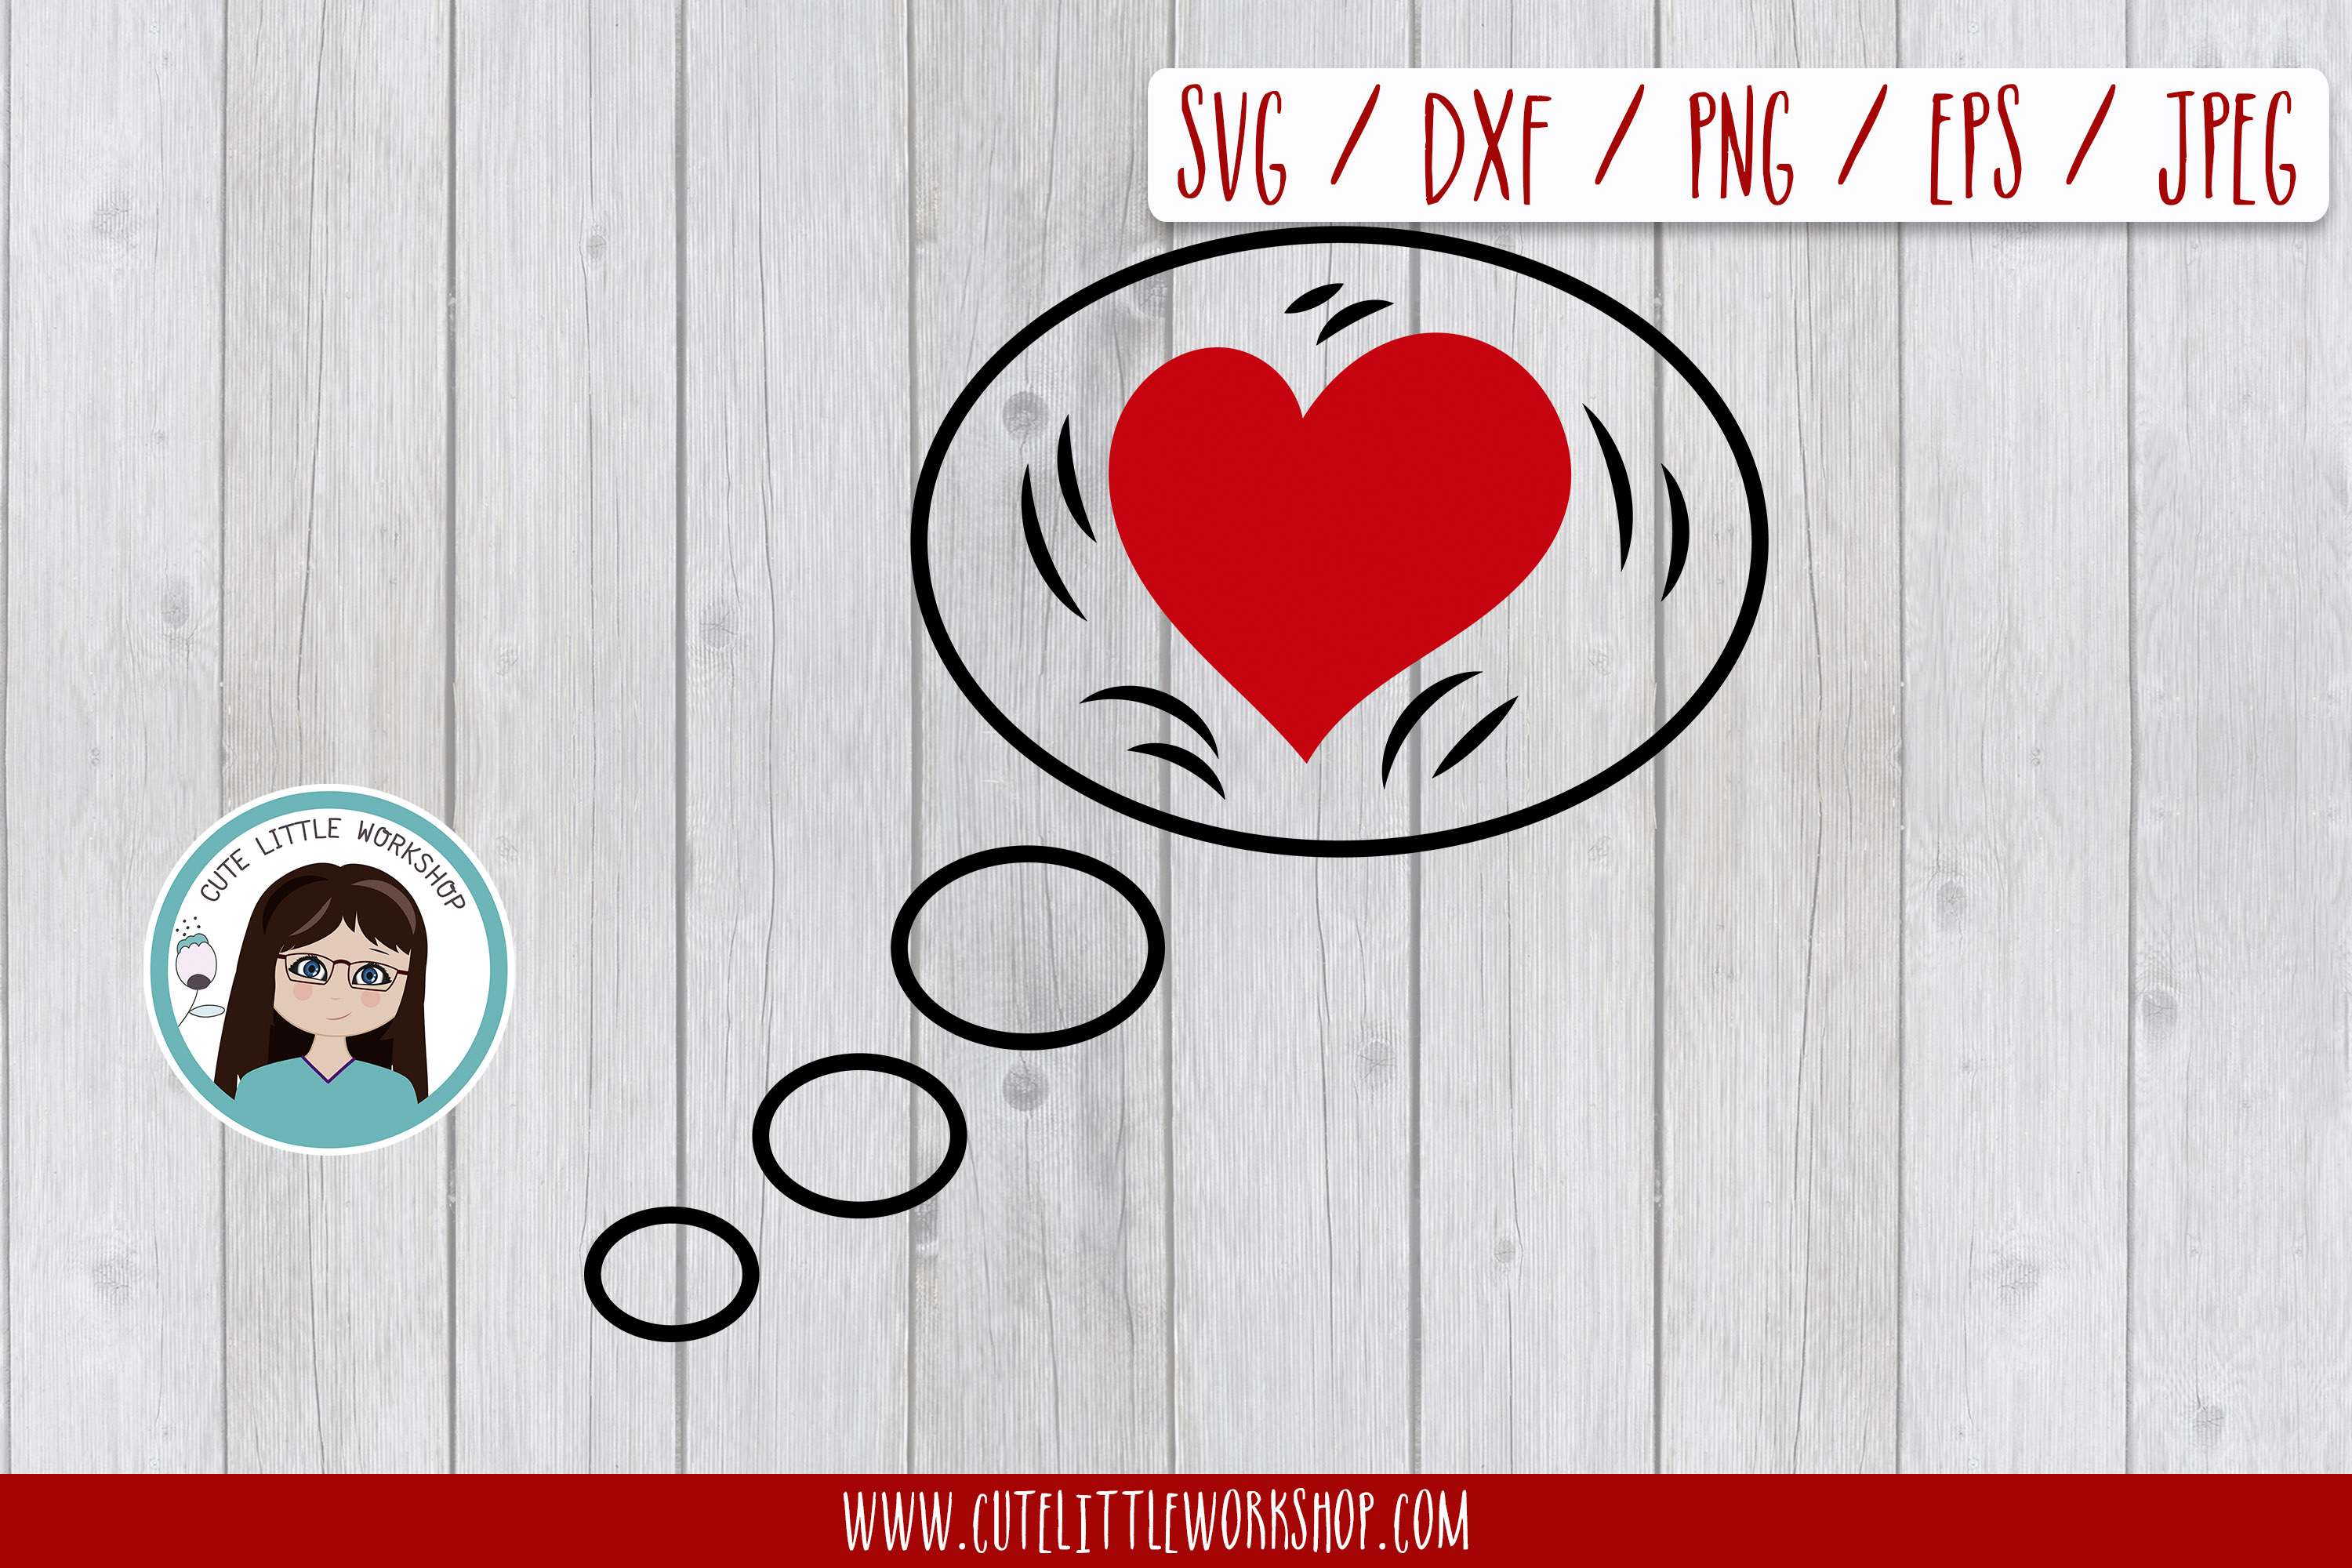 Love bubble svg, dxf, png, eps example image 1